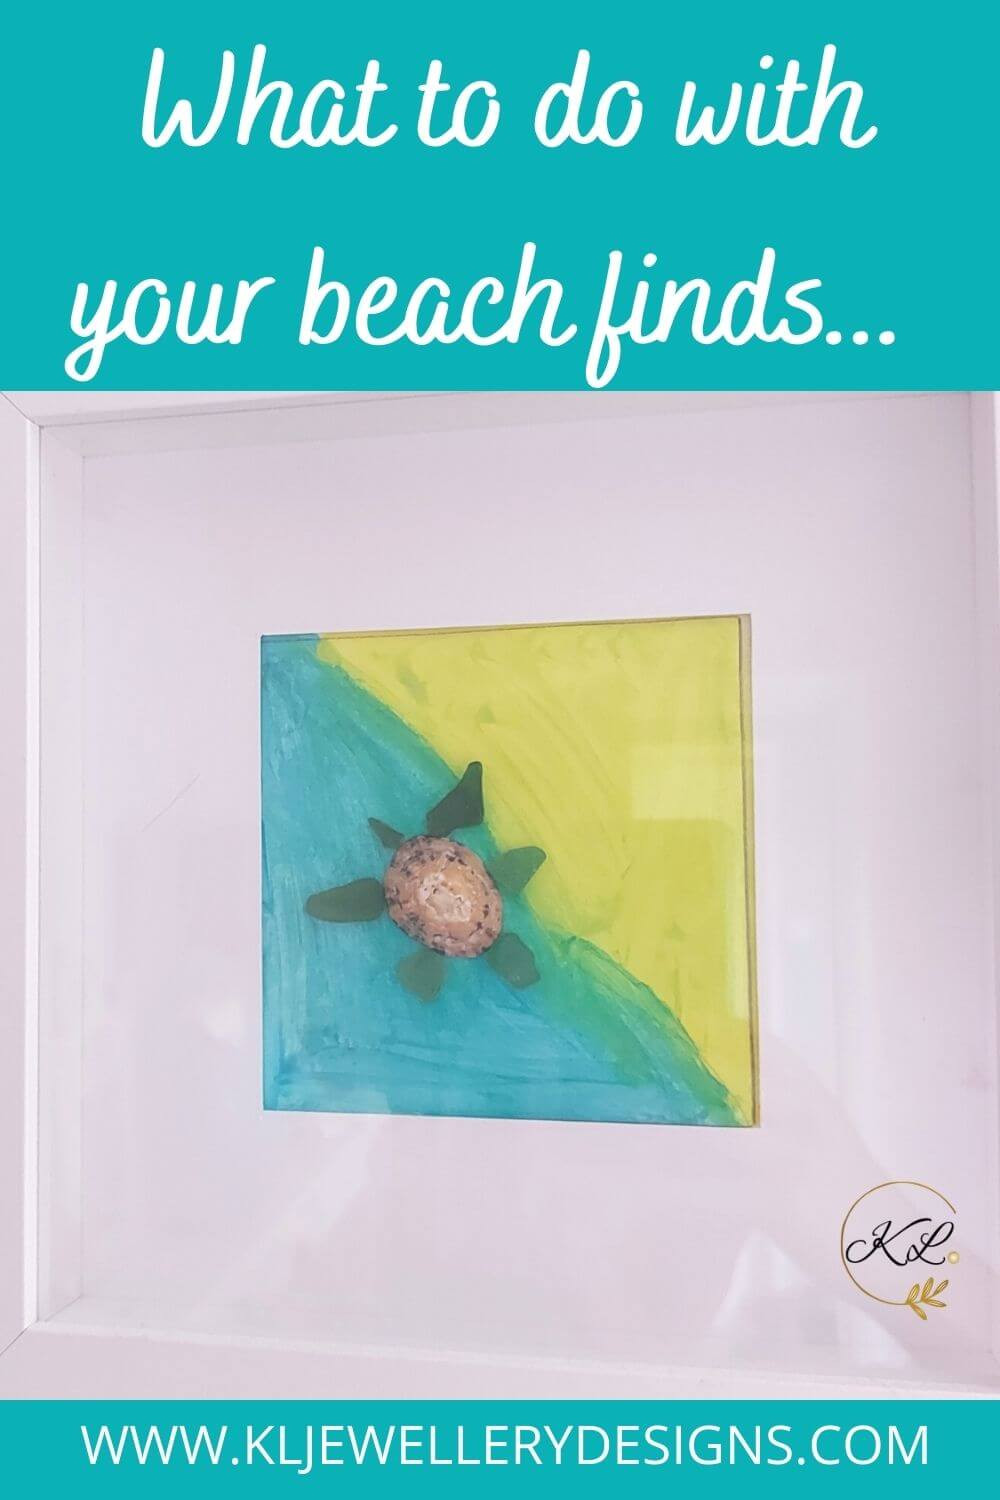 Learn how to make beach art with sea glass and shells. You can make turtle sea glass to Christmas trees made from sea glass